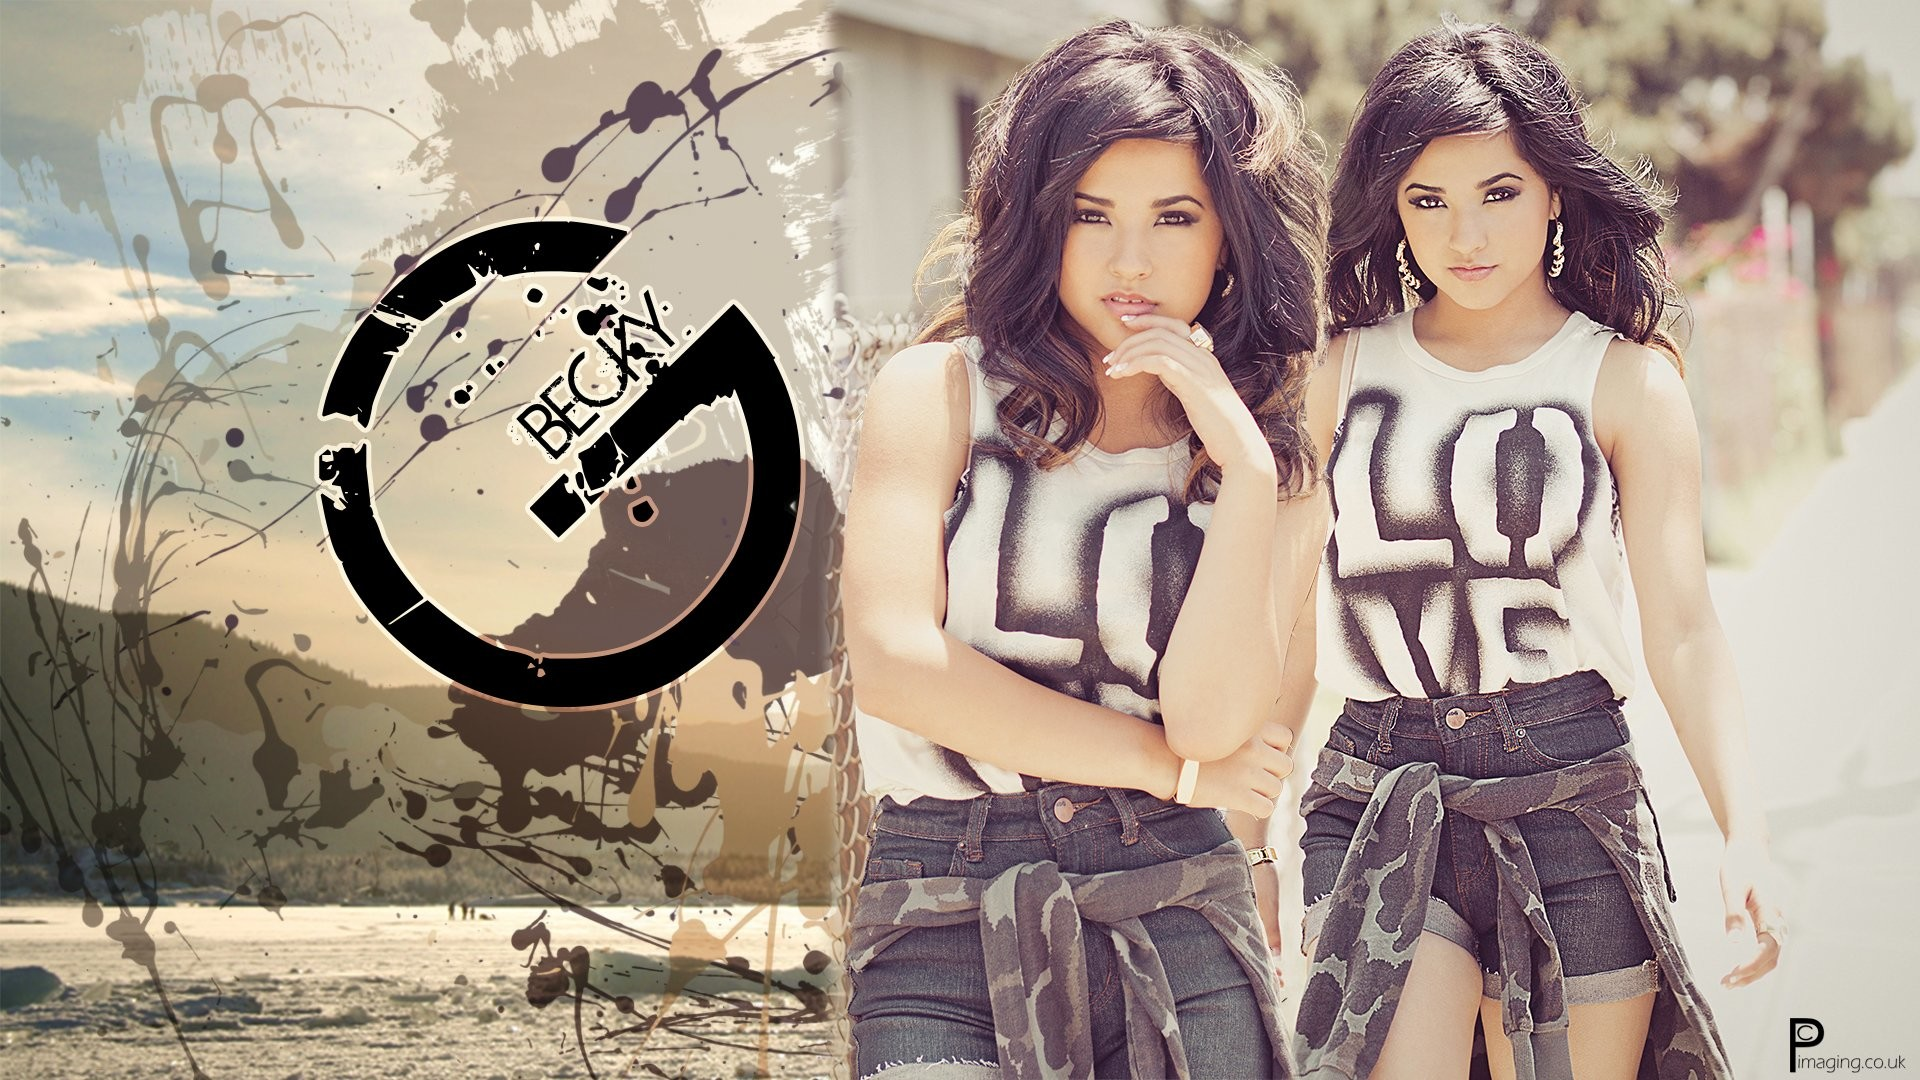 Res: 1920x1080, Becky G Wallpapers 20 - 1920 X 1080